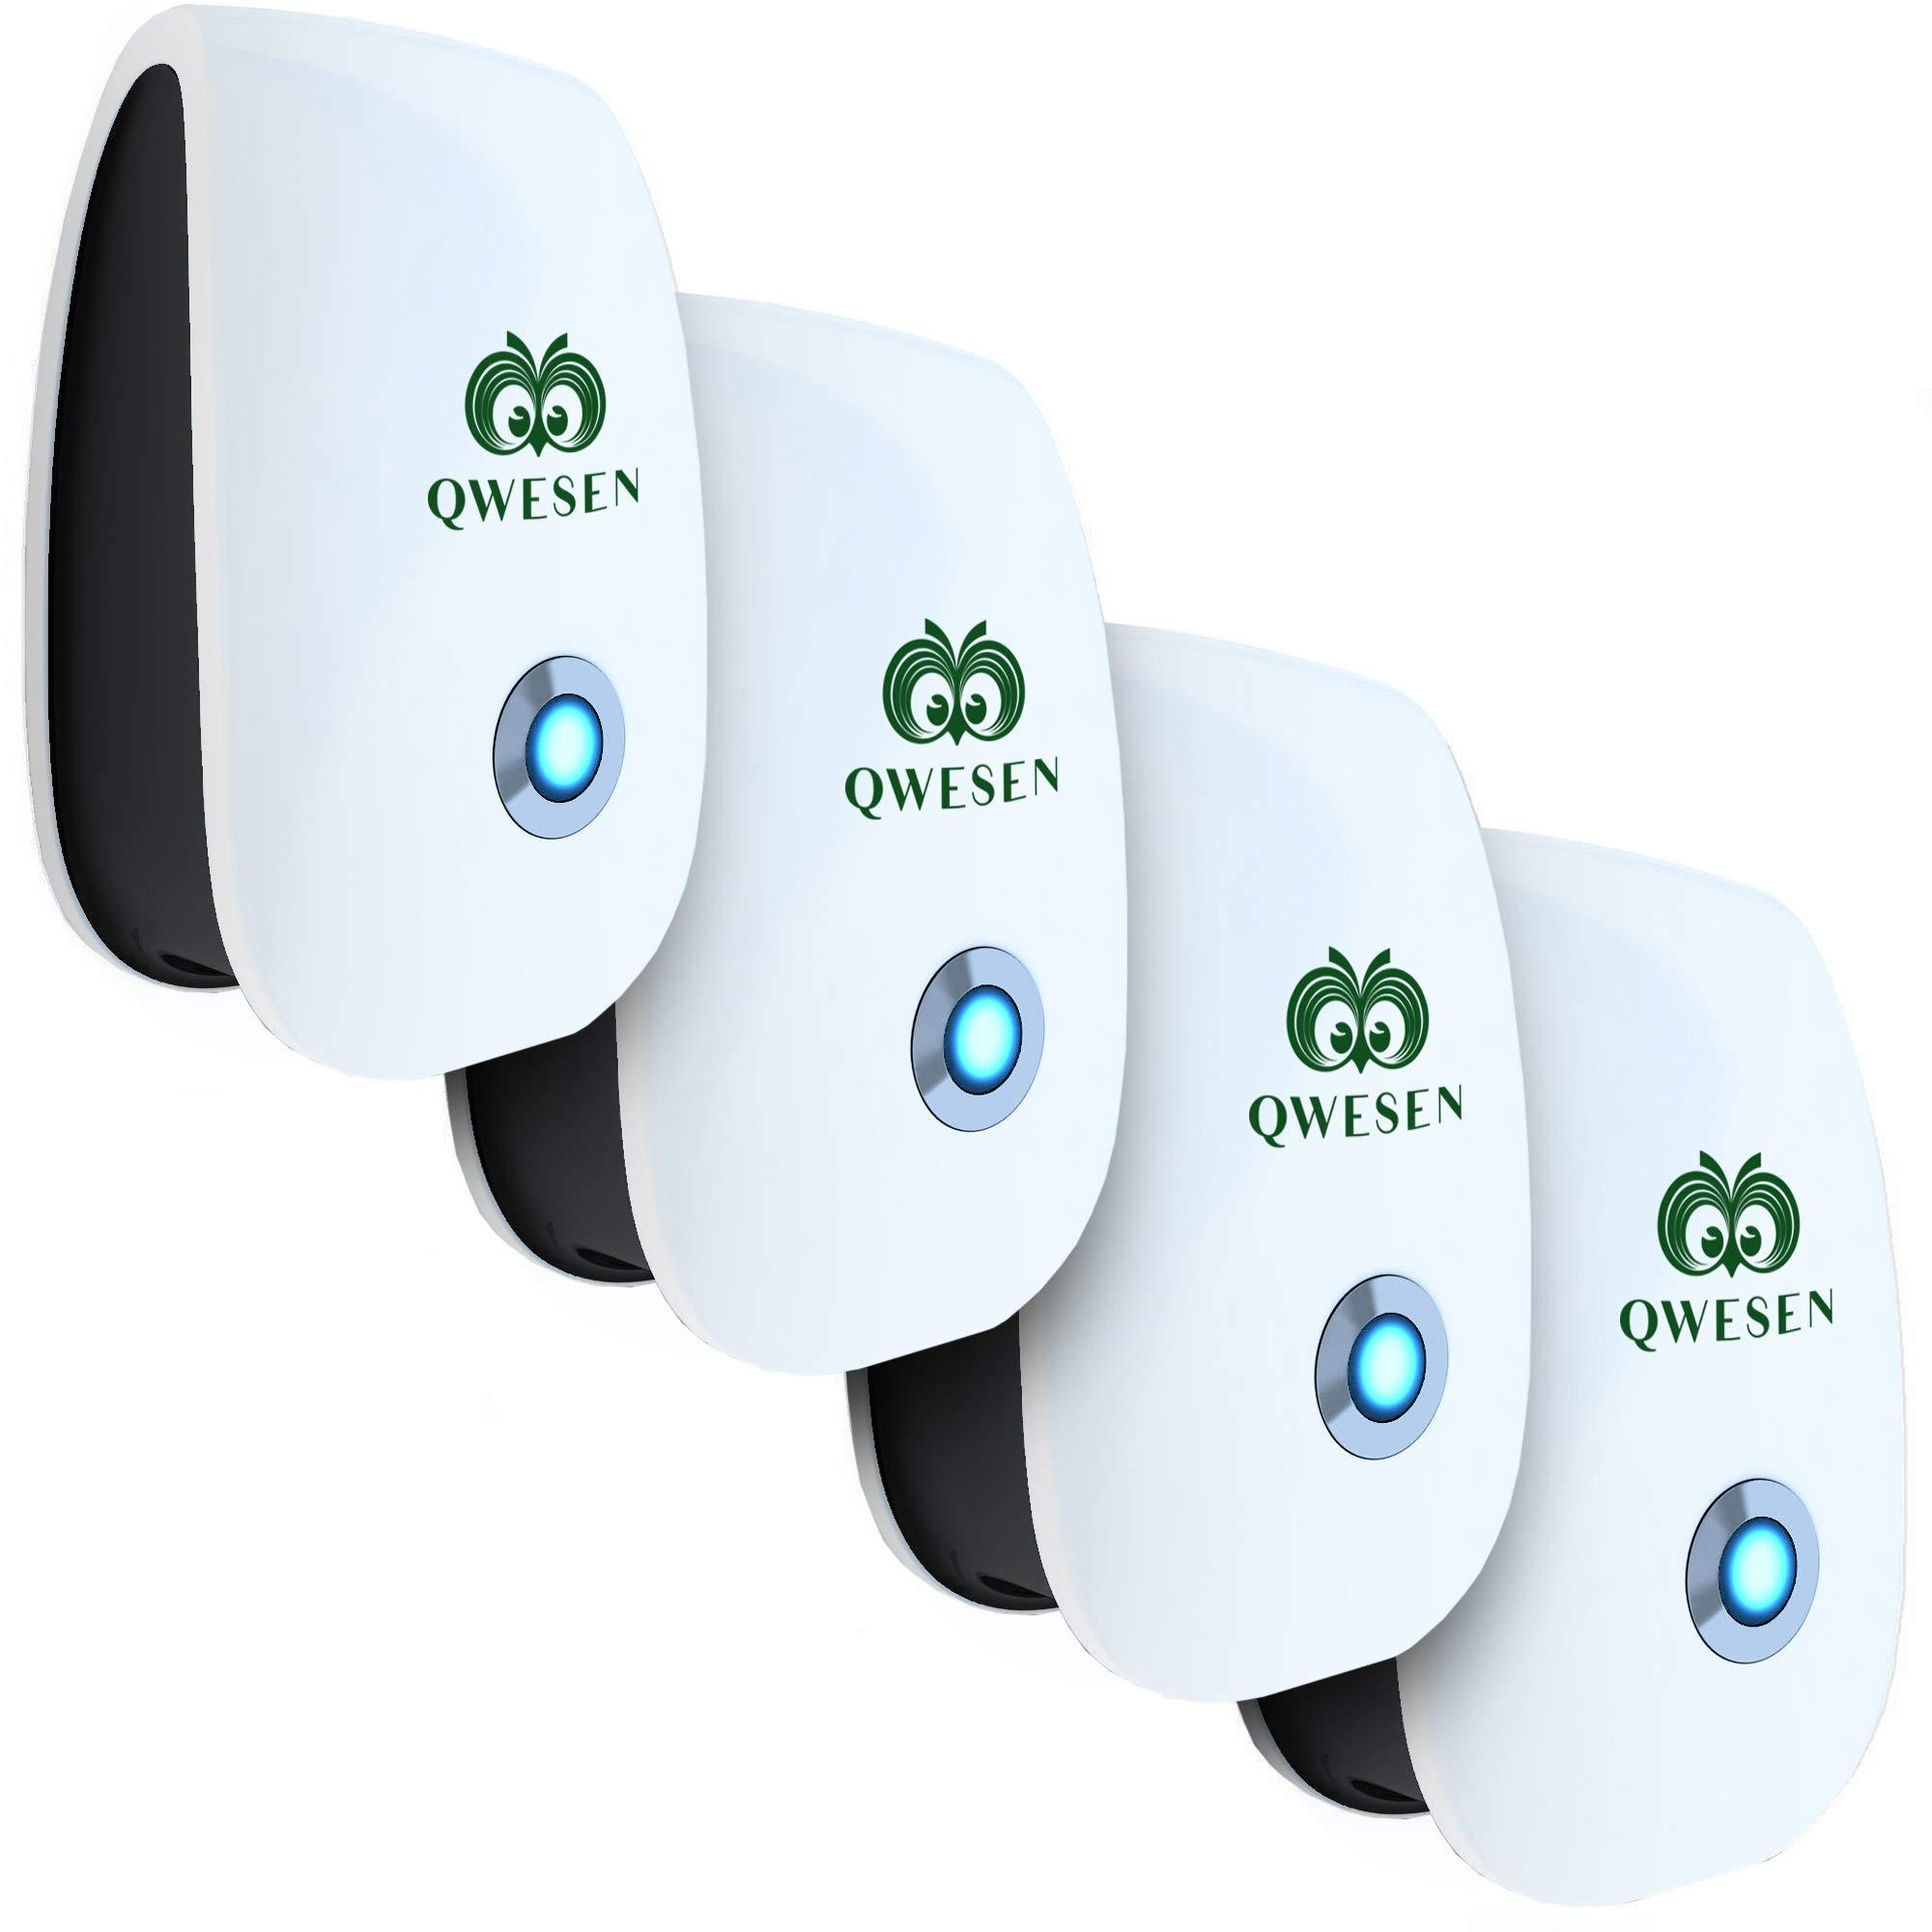 Ultrasonic Pest Repeller | Best Pest Control Ultrasonic Repellent - Set of 4 Electronic Pest Control - Pest Reject - Plug in Home Indoor Repeller - Get Rid of Mosquitos, Insects, Ants, Fleas, Gophers